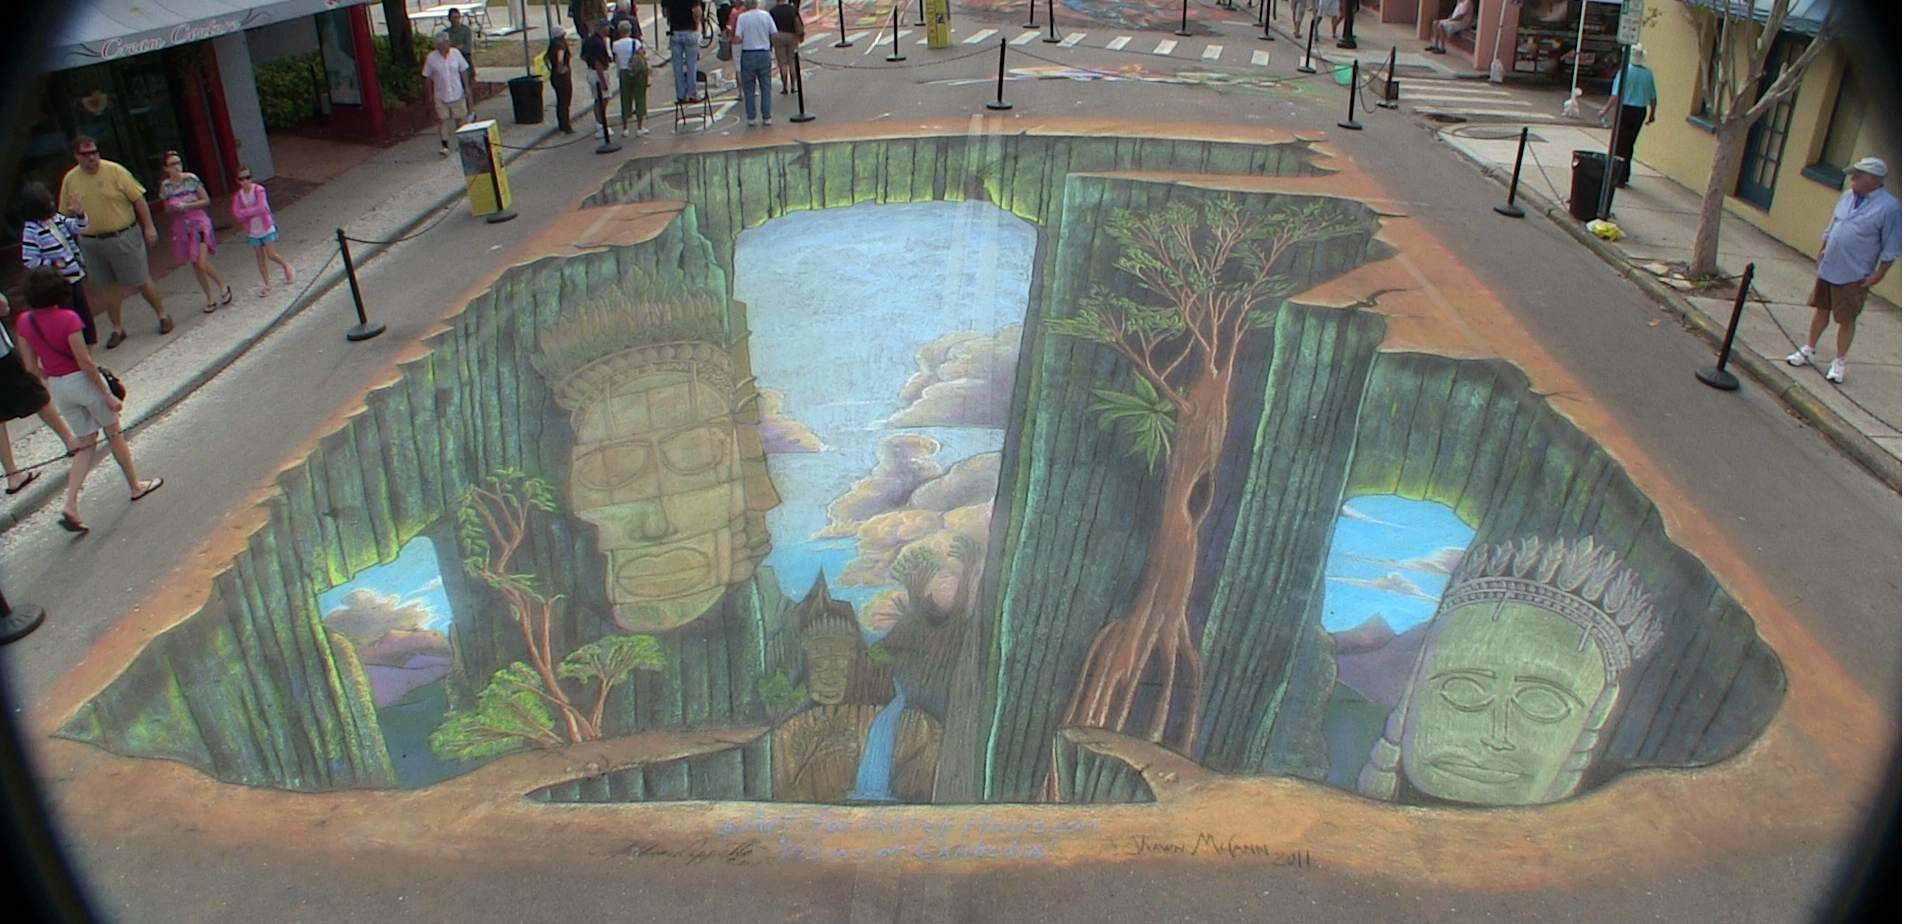 The Business of Street Painting Art: 'Visions of Cambodia